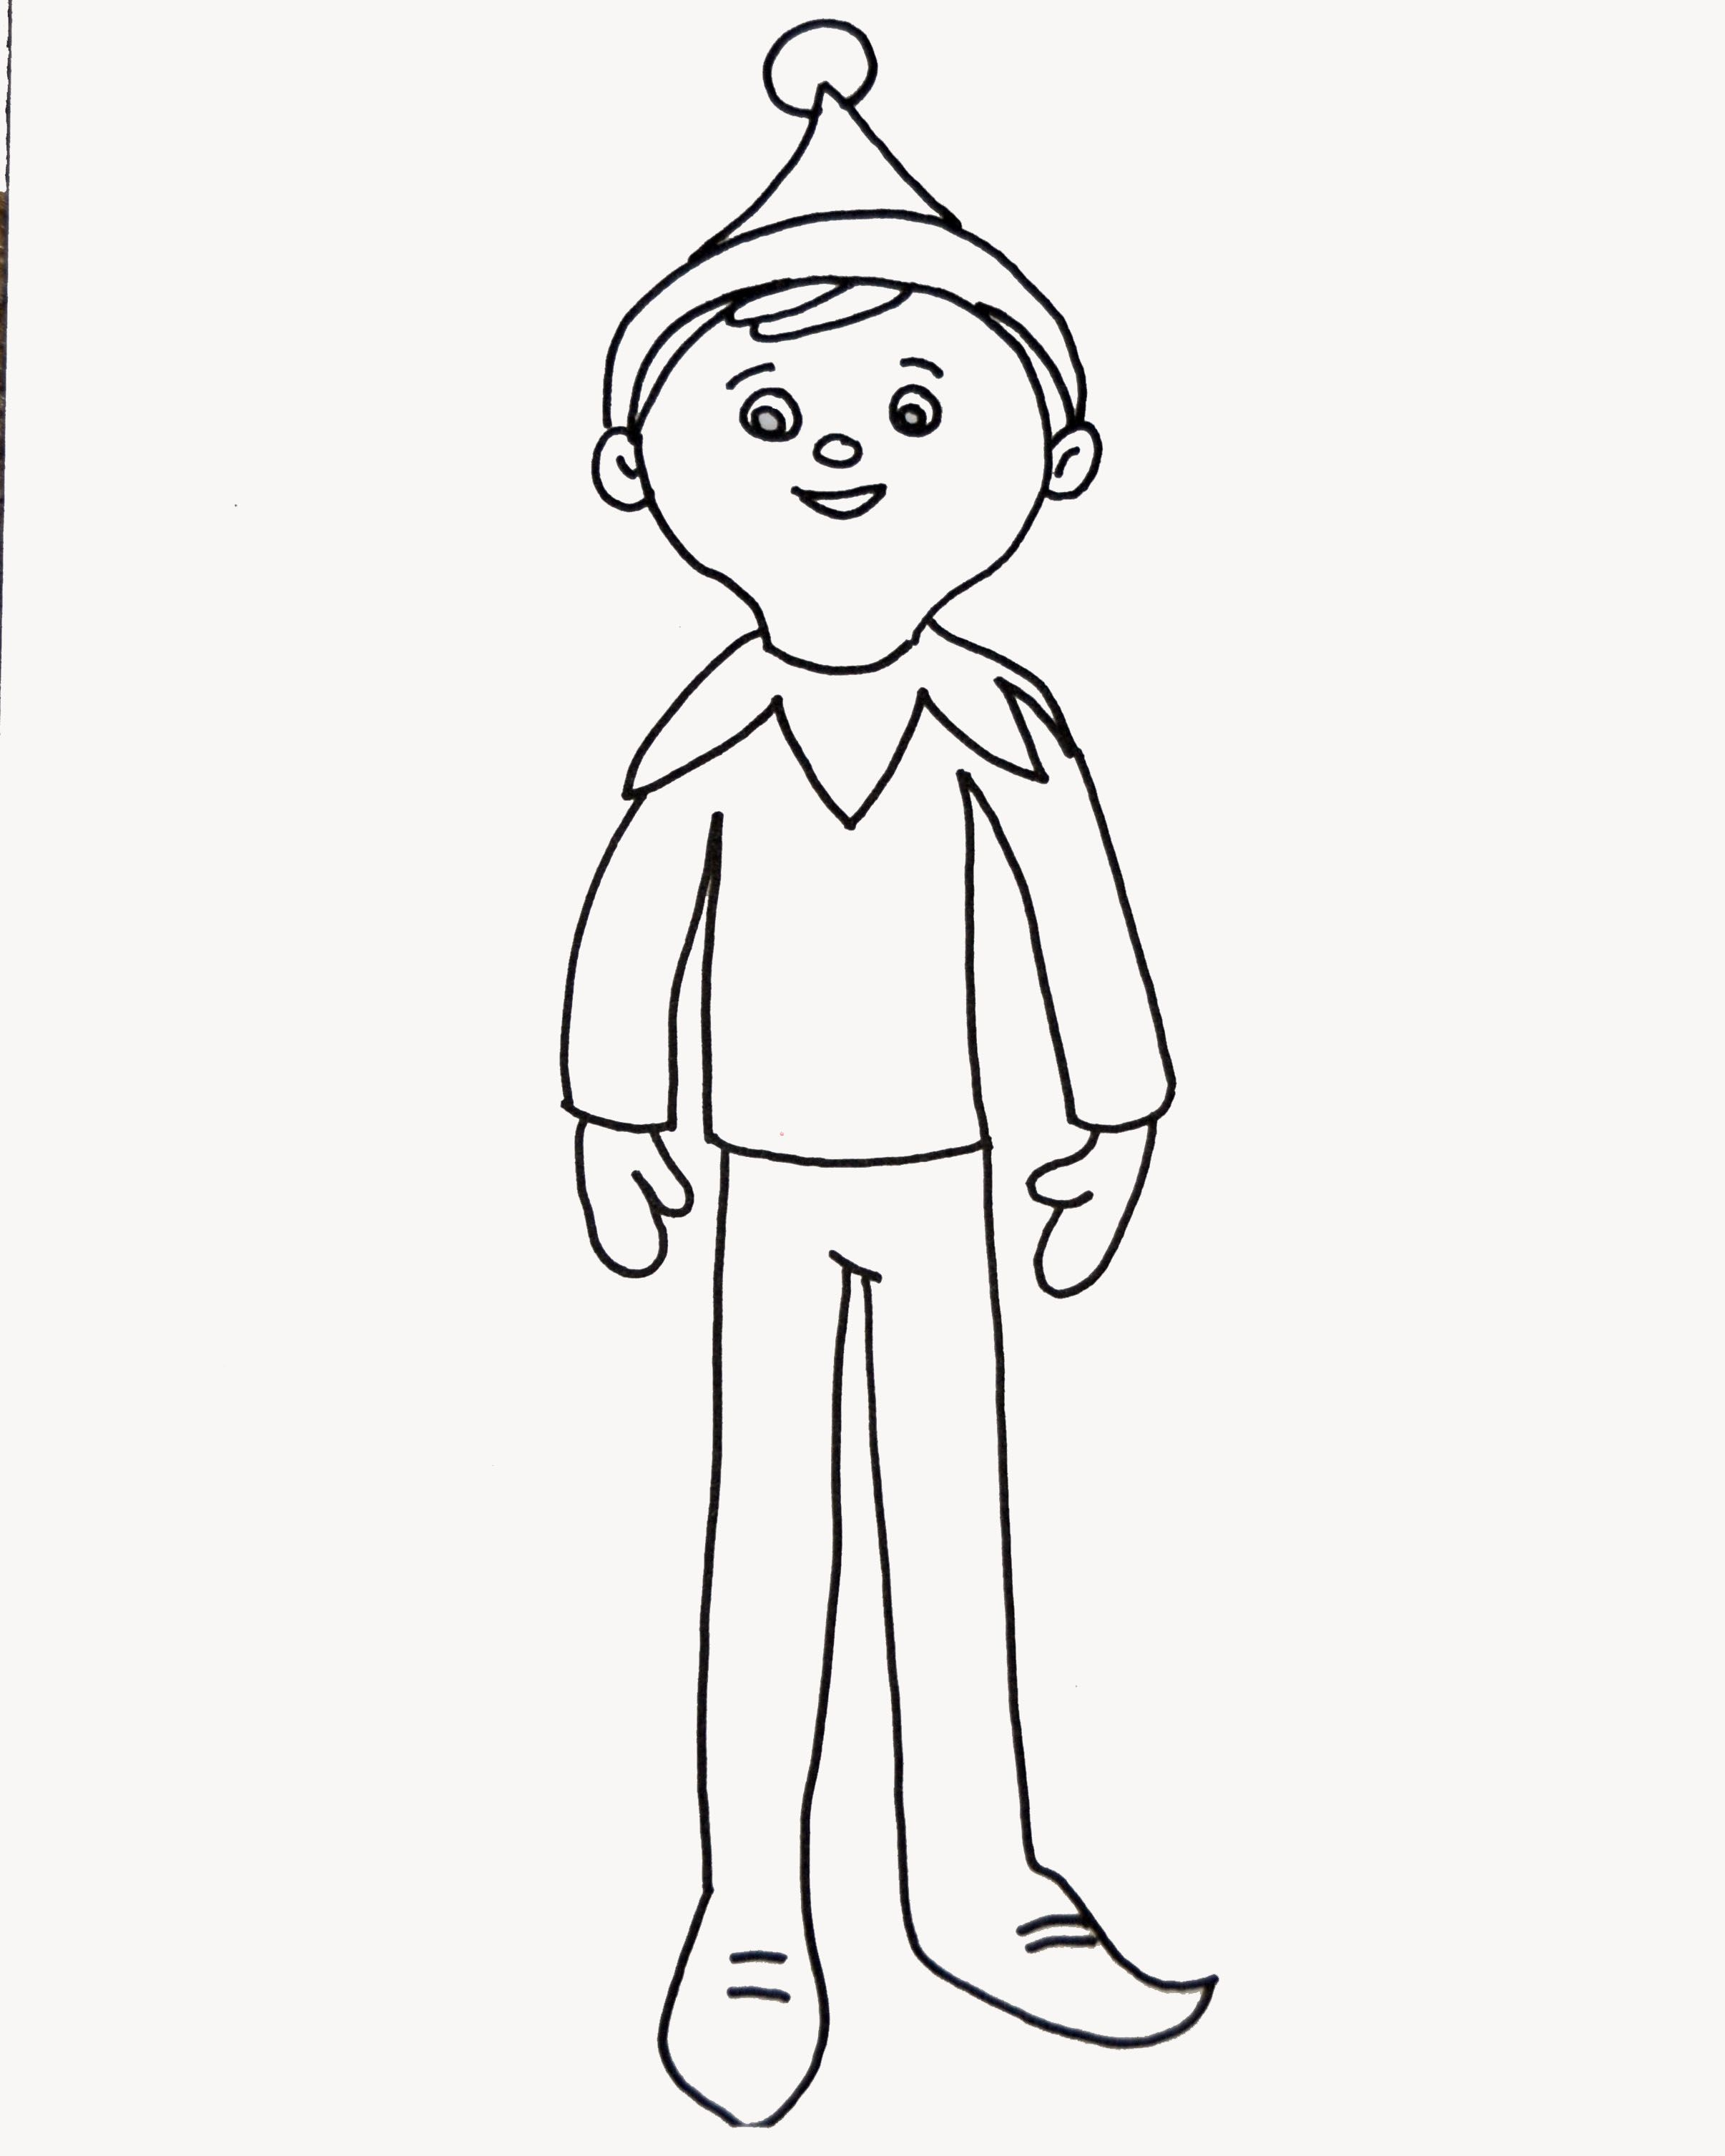 Elf On The Shelf Coloring Page For Elfie And The Kids To Colour In Christmas Coloring Pages Elf On The Shelf Coloring Pages To Print